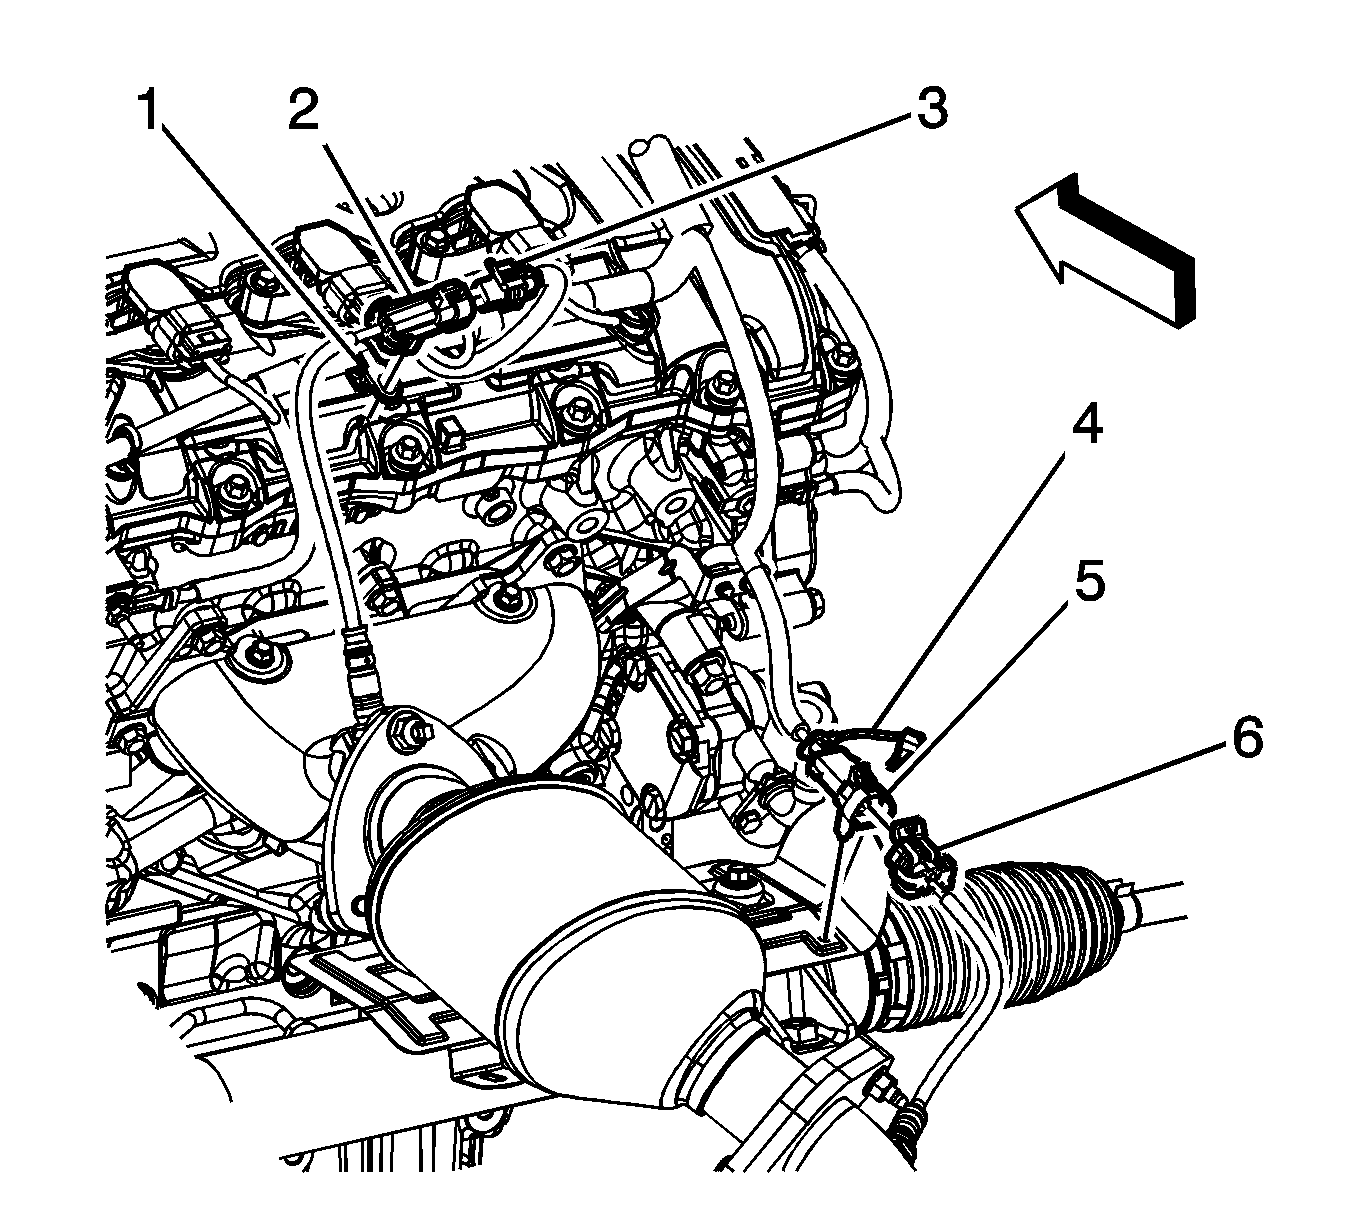 [OE_6909] 2010 Buick Enclave Cylinder Diagram Wiring Diagram